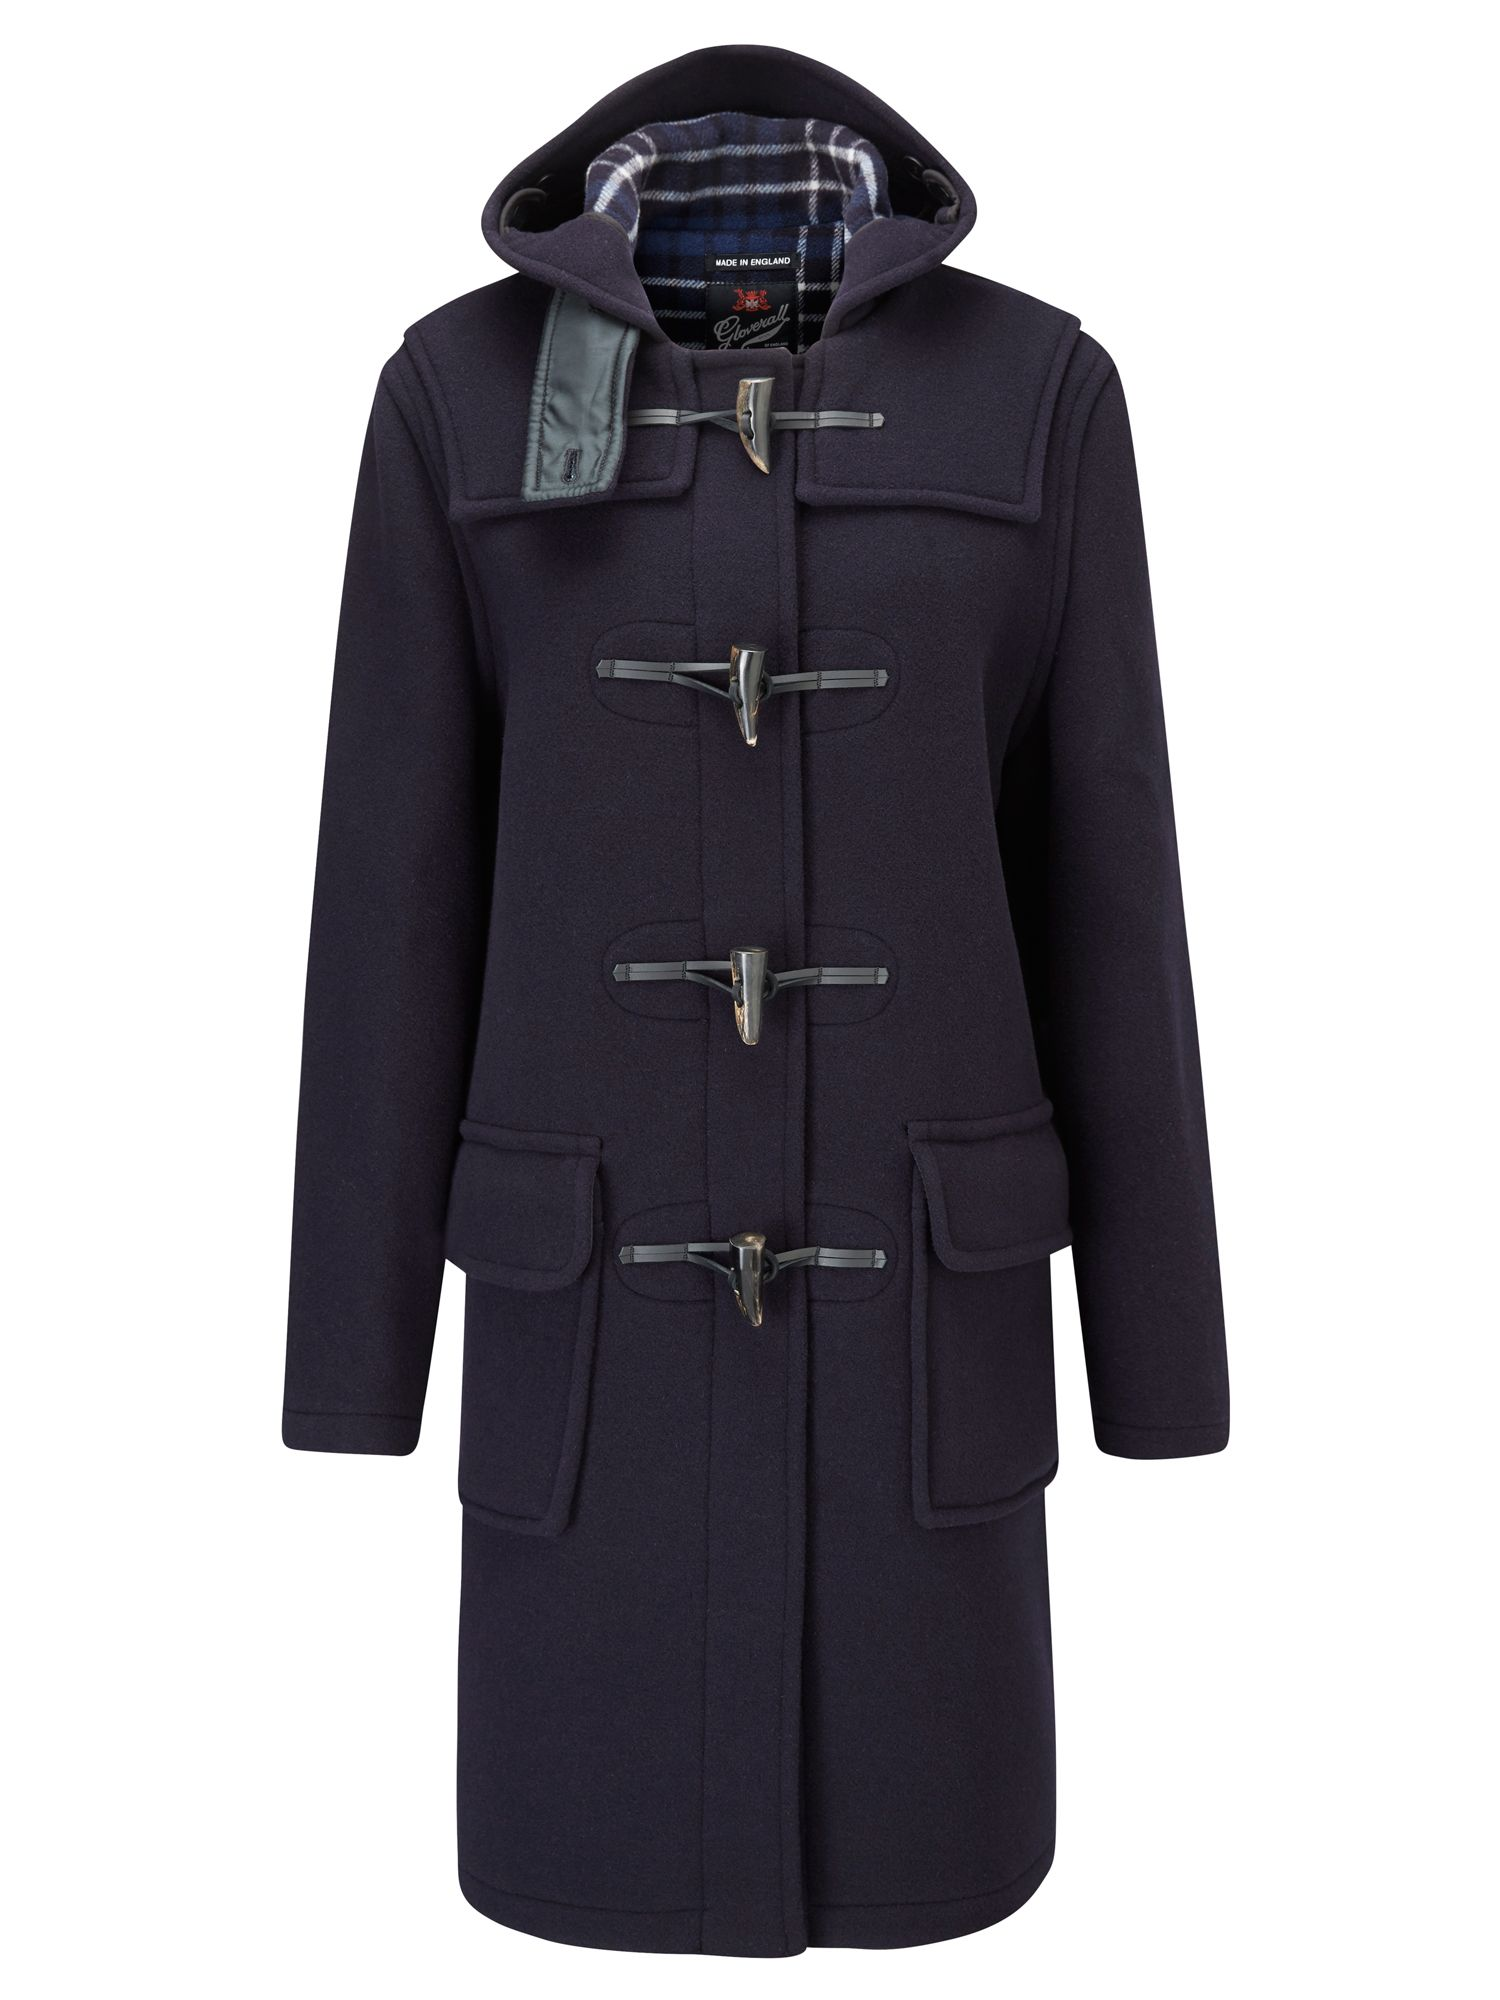 Gloverall Long Original Fit Duffle Coat, Blue